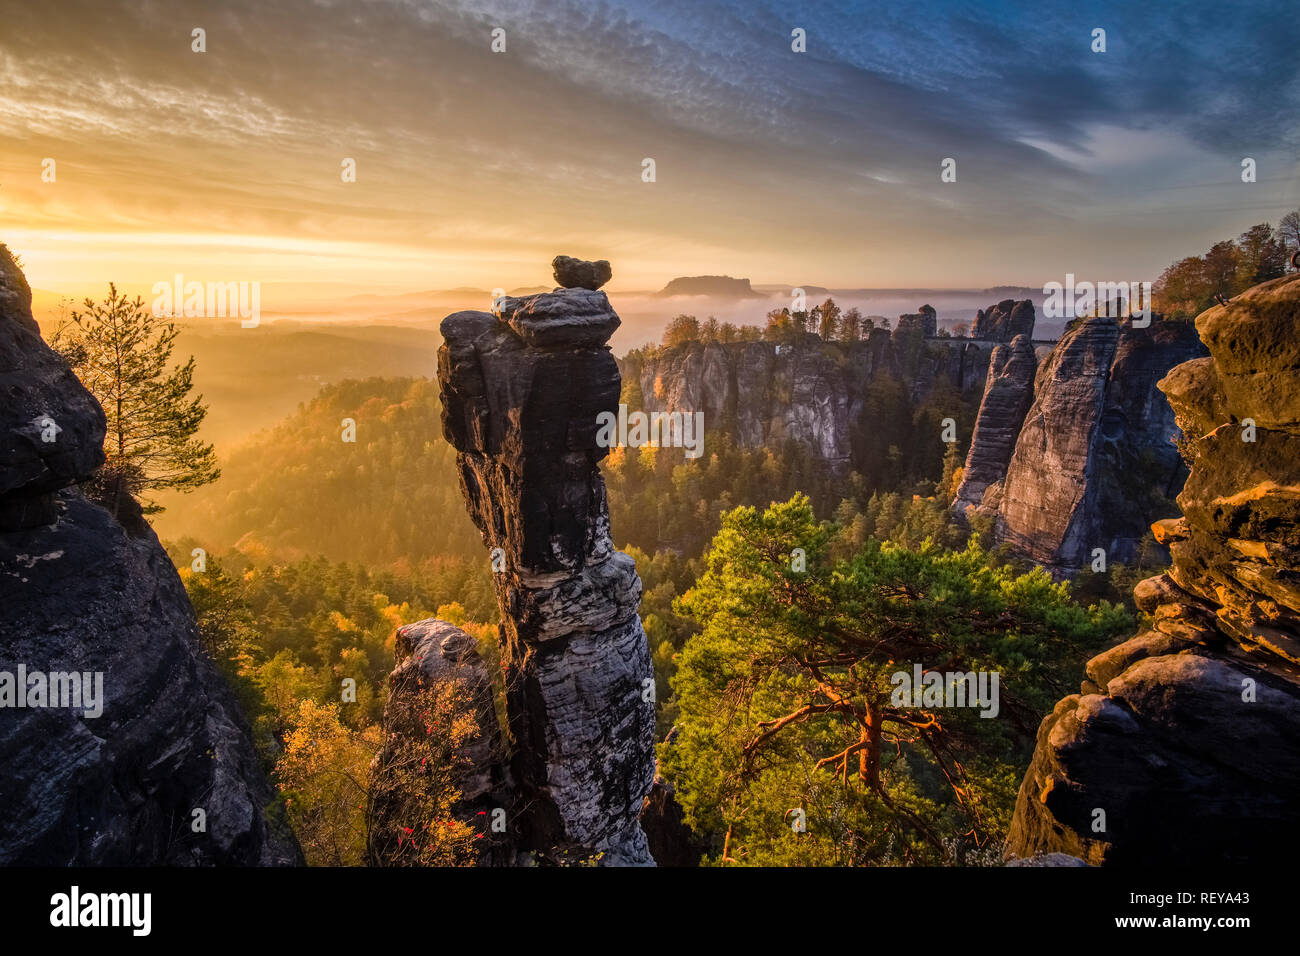 Landscape in the National Park Sächsische Schweiz with rock formations around Bastei, trees and fog at sunrise Stock Photo